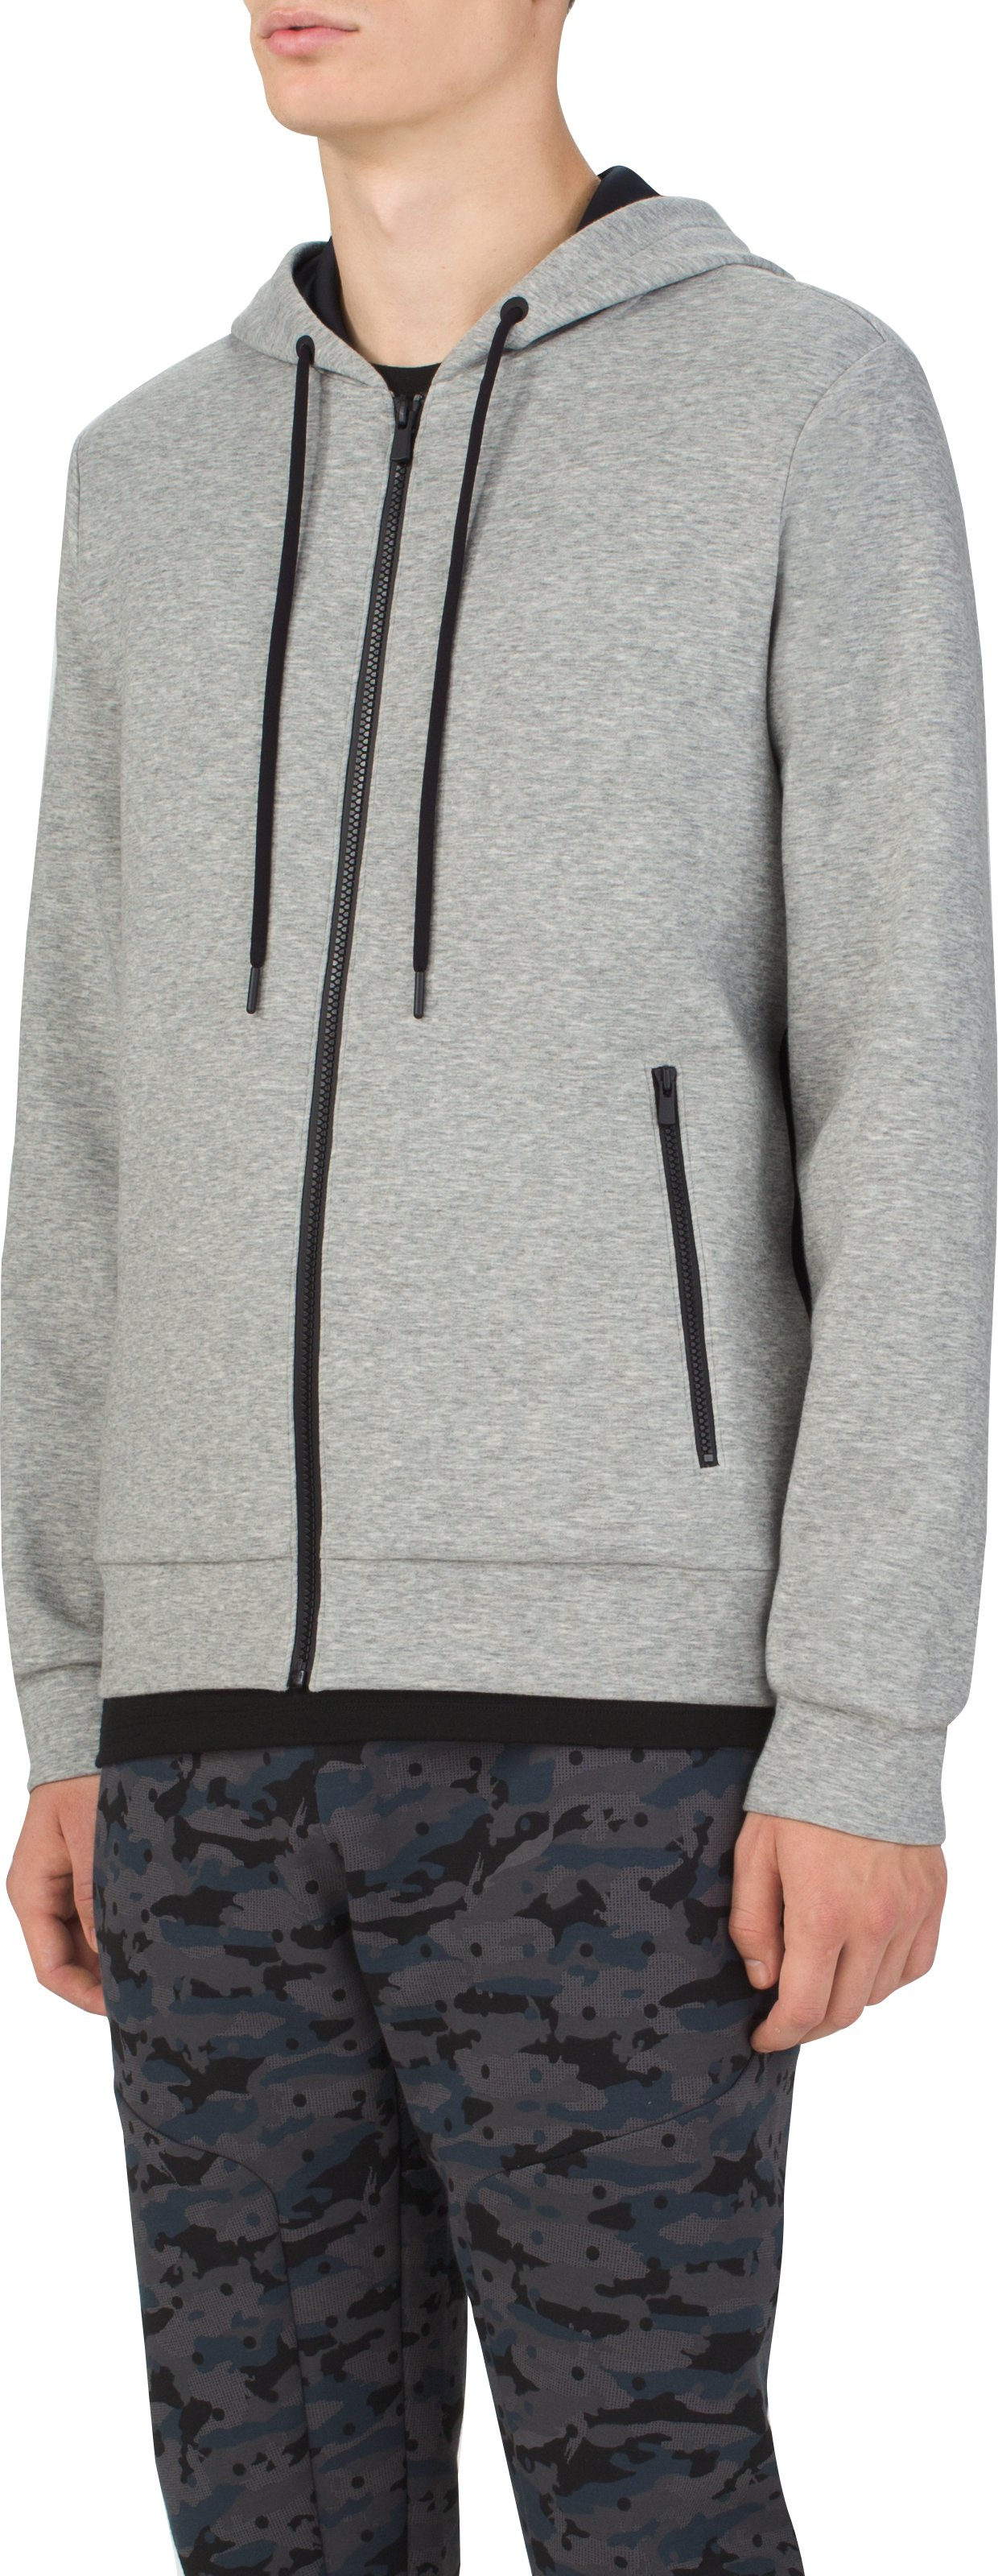 Men's UAS Tailgate Full Zip Hoodie, LIGHT HEATHER GRAY, zoomed image